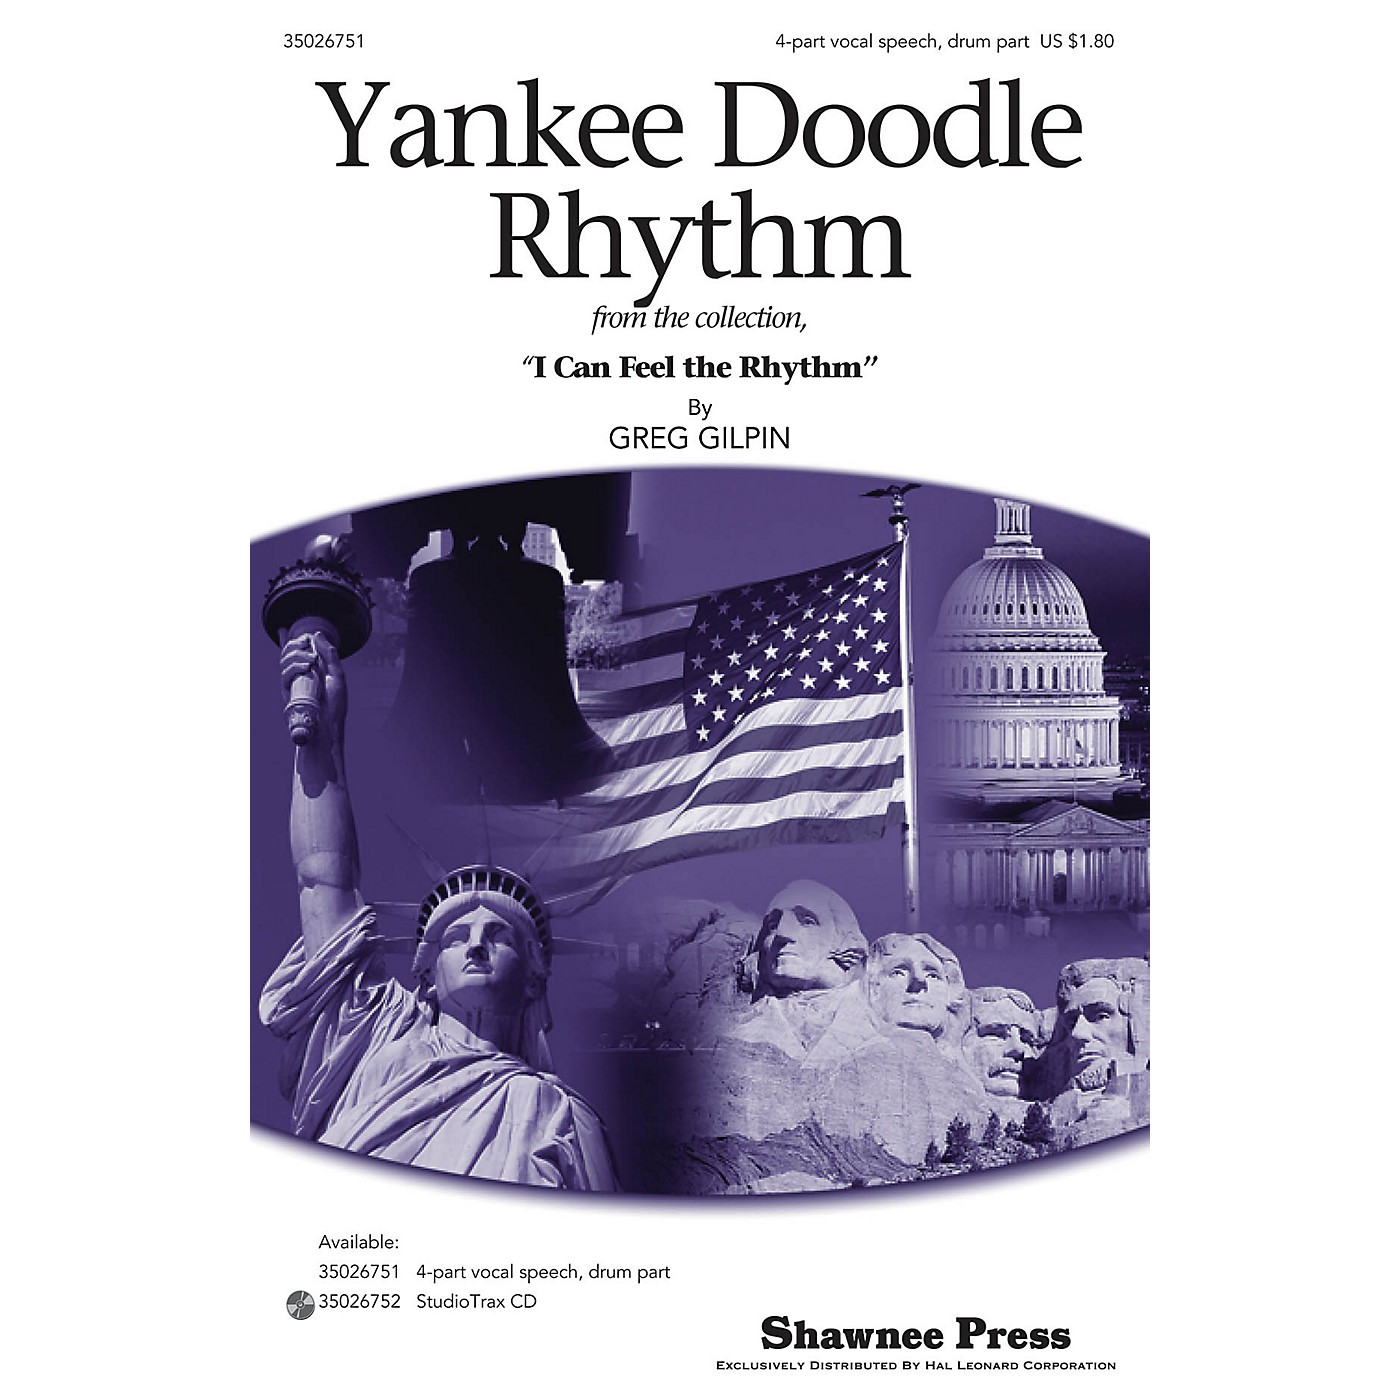 Shawnee Press Yankee Doodle Rhythm 4PT VOCAL SPEECH, DRUM composed by Greg Gilpin thumbnail